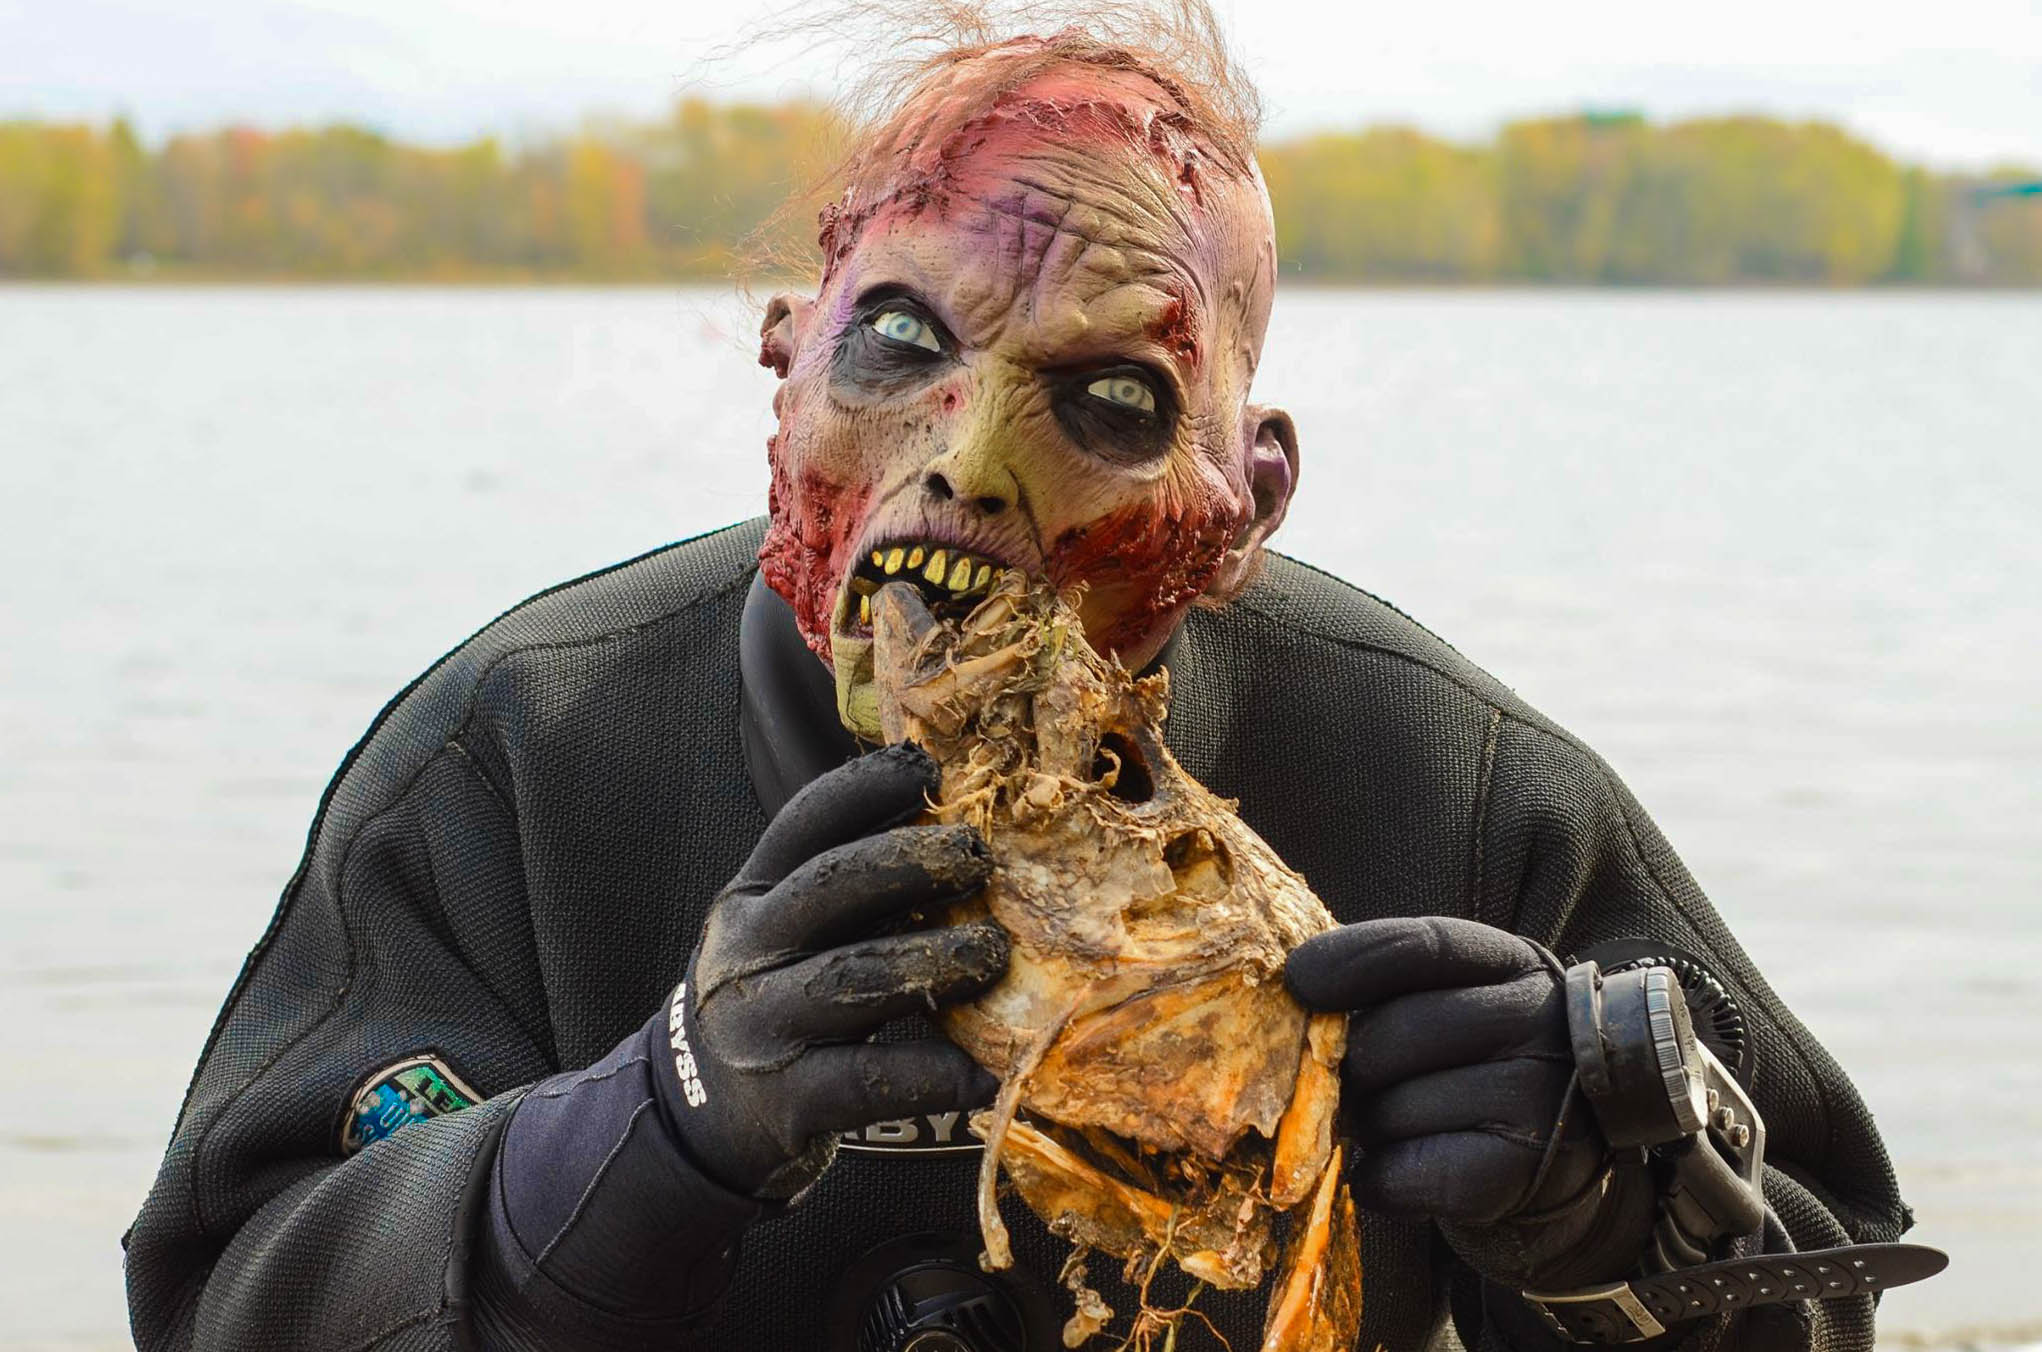 Zombie Eating a Fish at the Dive Course